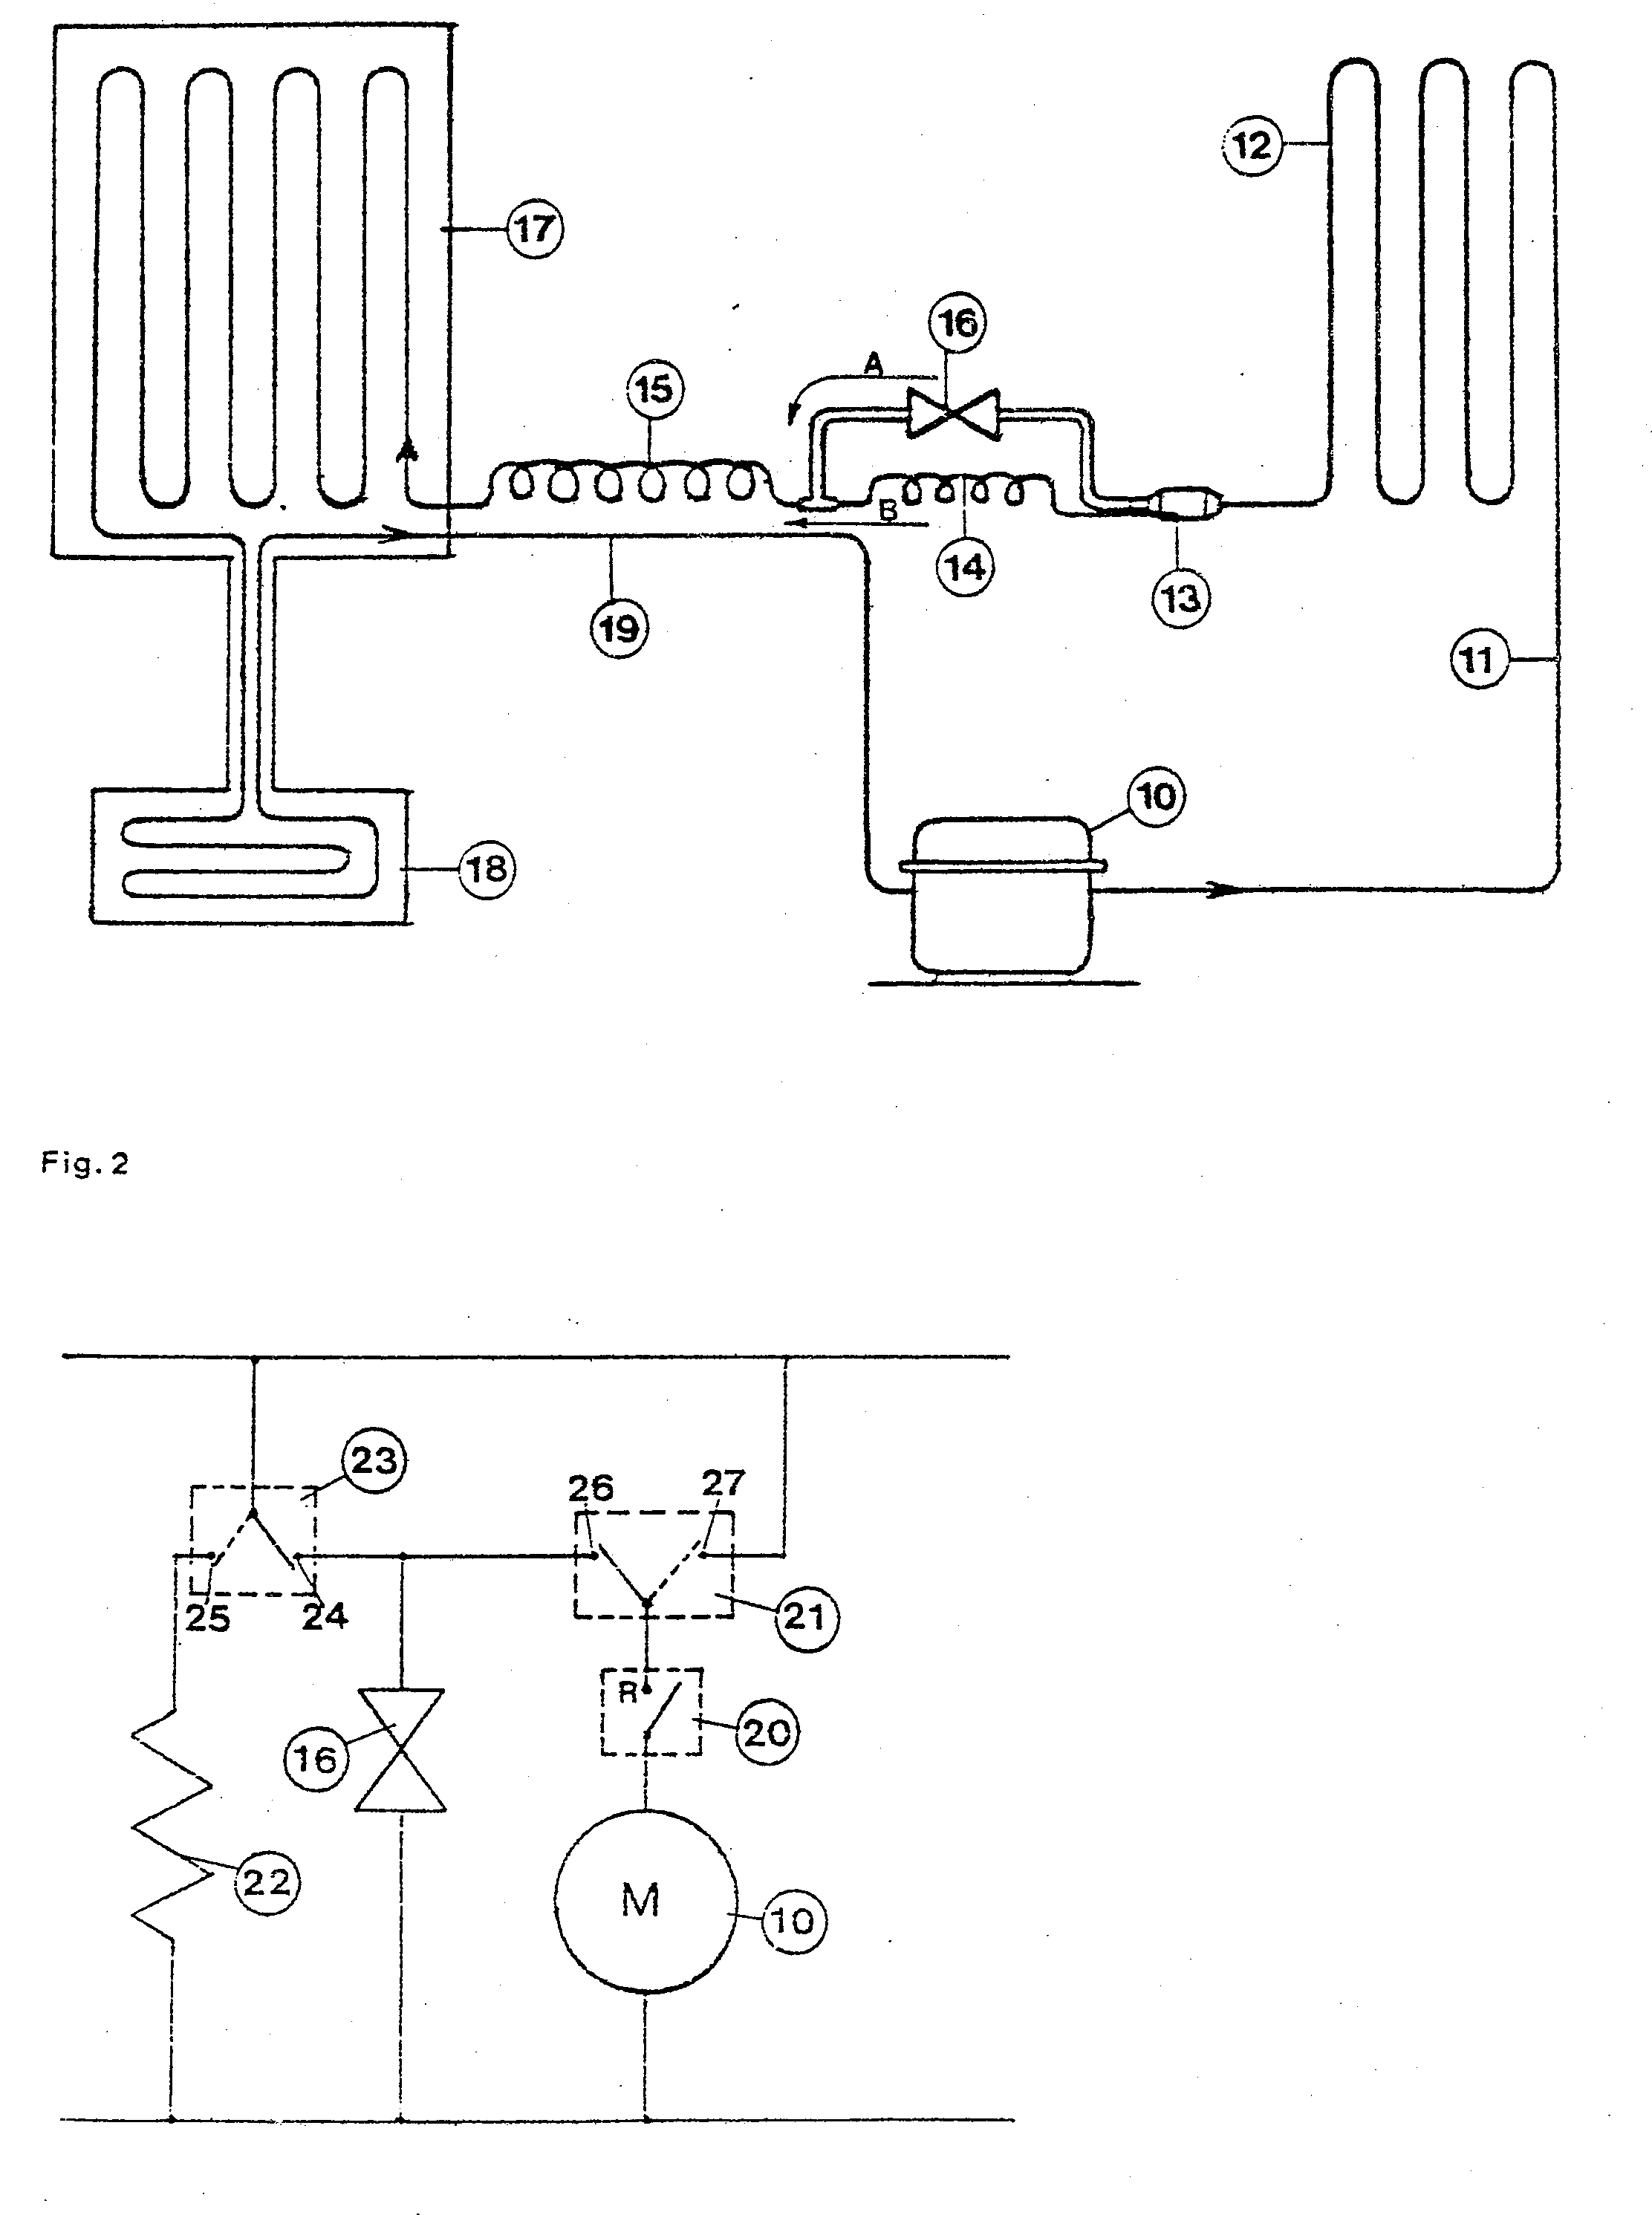 patent epa refrigerant circuit for a refrigerator patent drawing